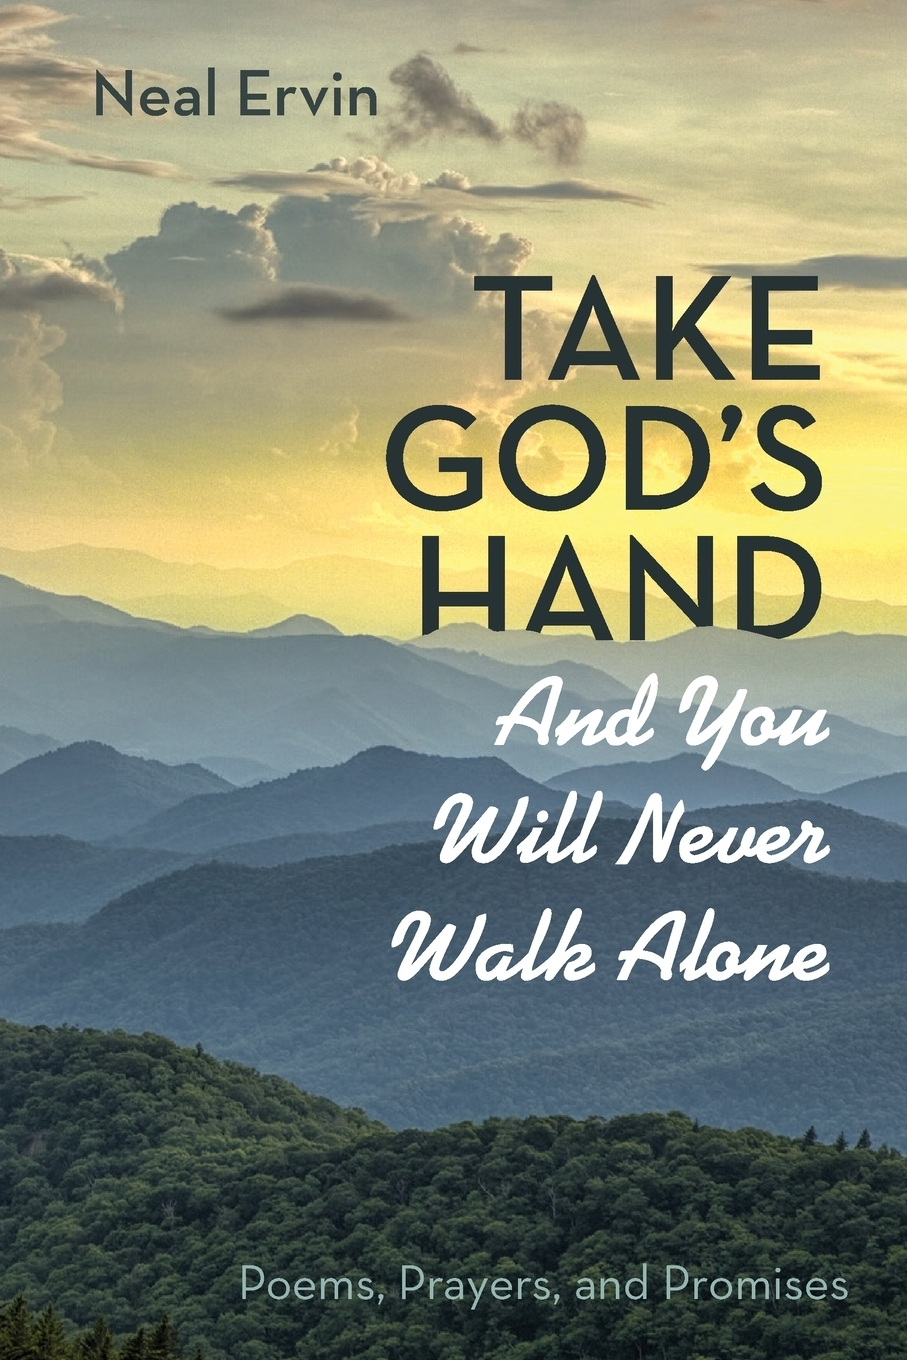 Neal Ervin. Take God's Hand and You Will Never Walk Alone. Poems, Prayers, and Promises